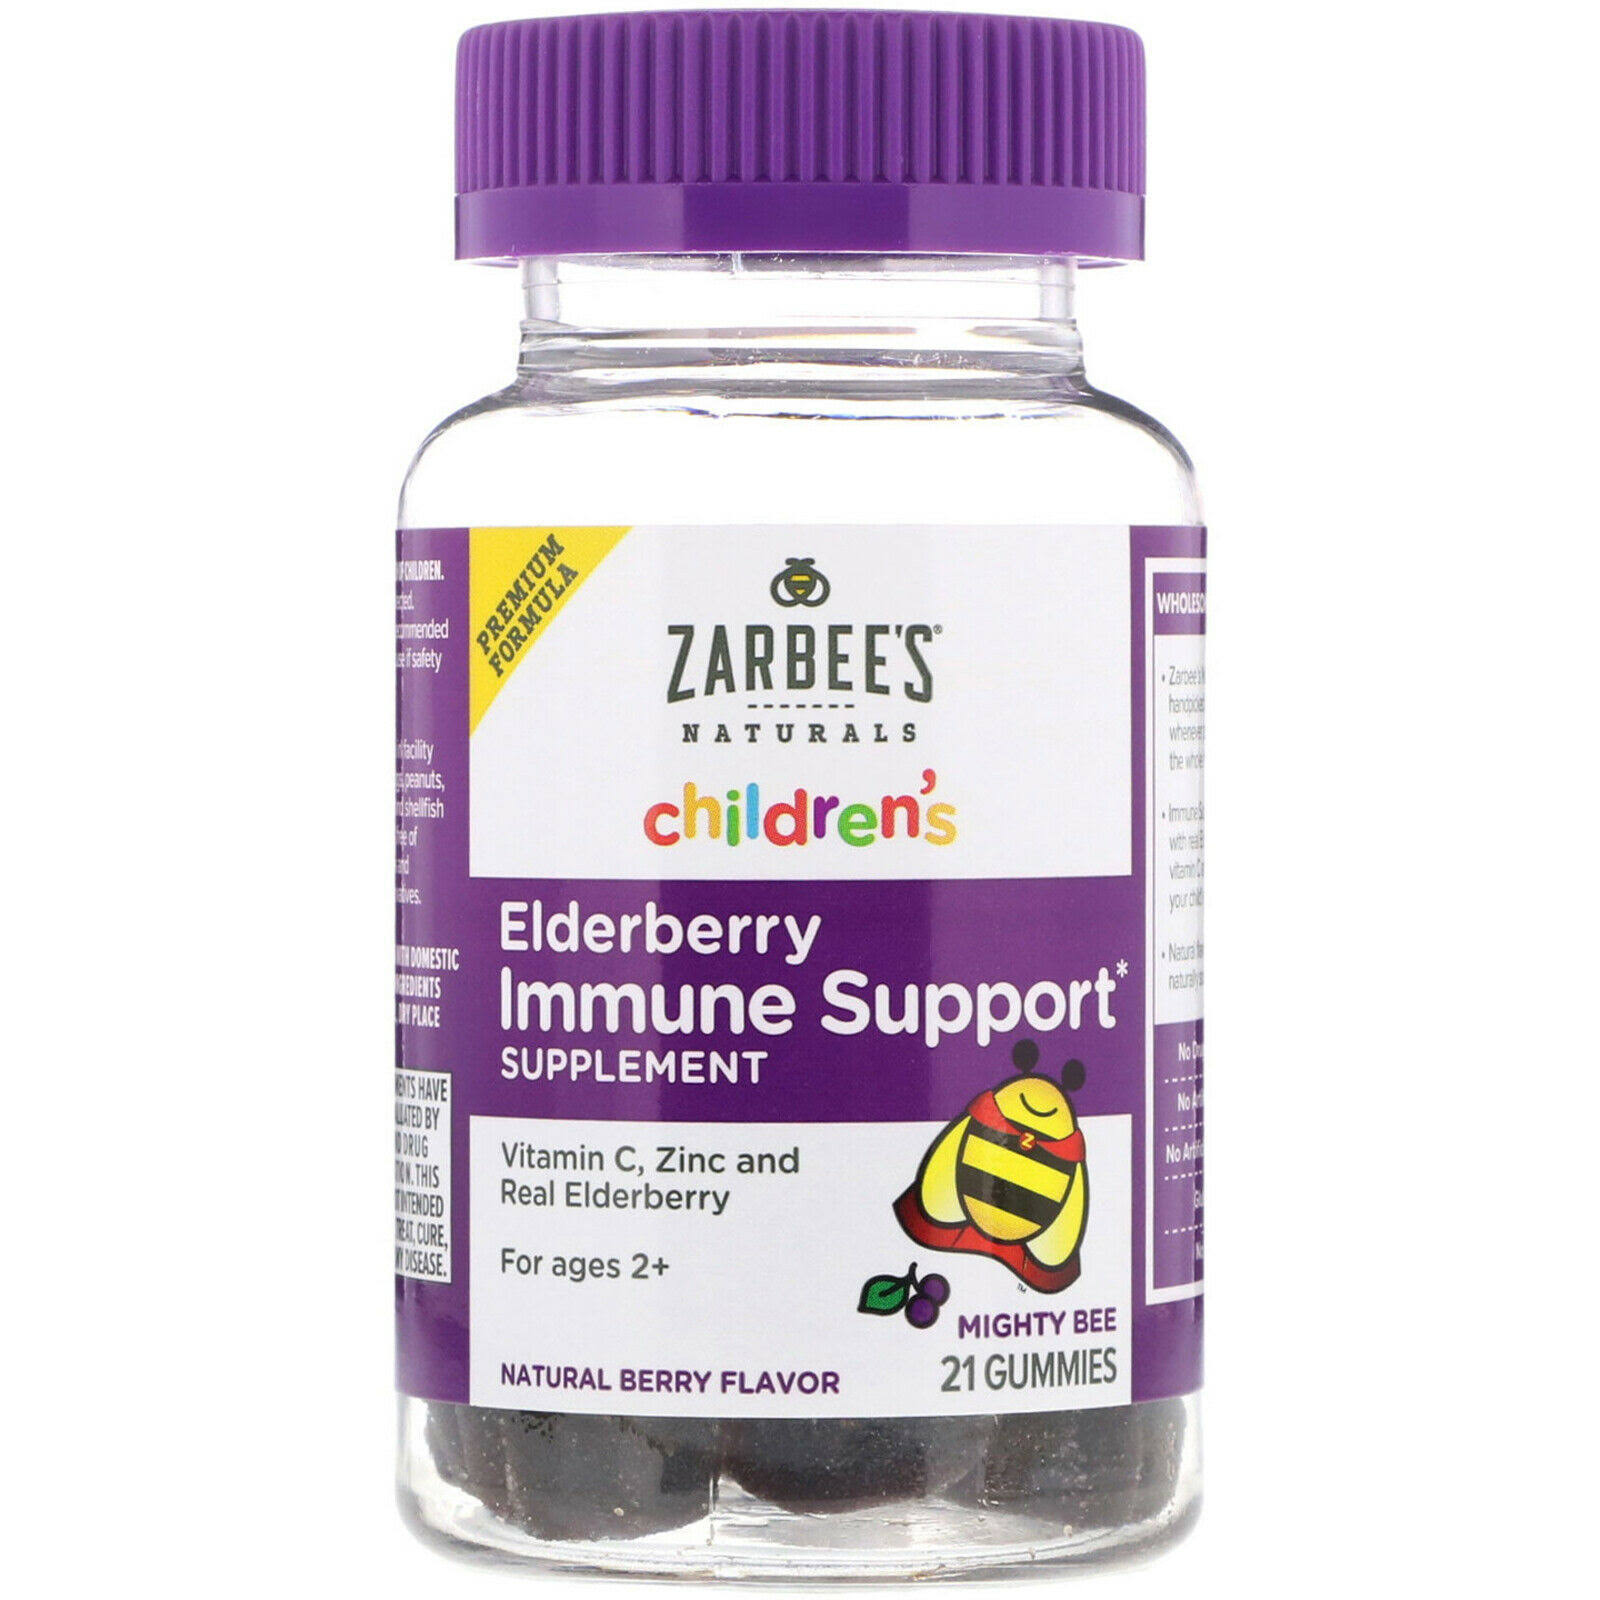 Zarbee's Naturals Children's Elderberry Immune Support Supplement - Natural Berry, 21 Gummies